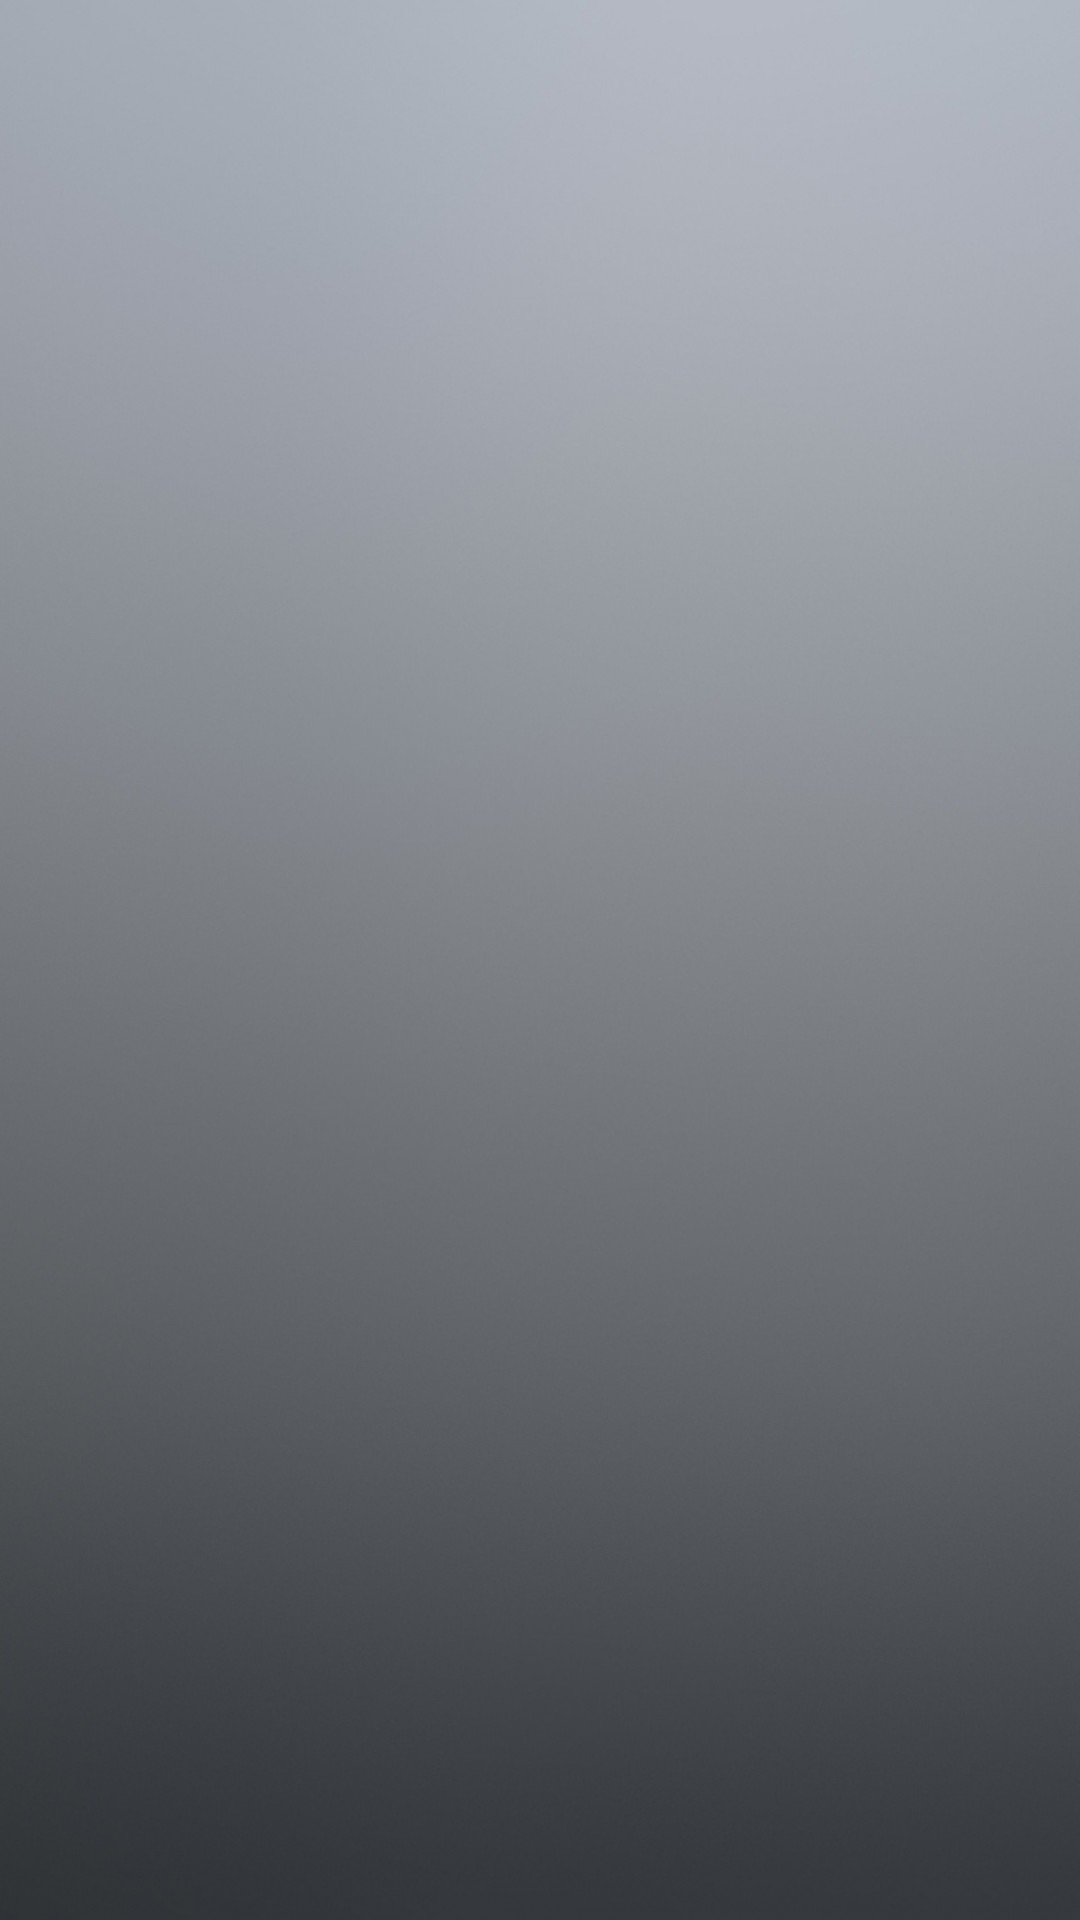 Gradient Grey Wallpaper for SONY Xperia Z1